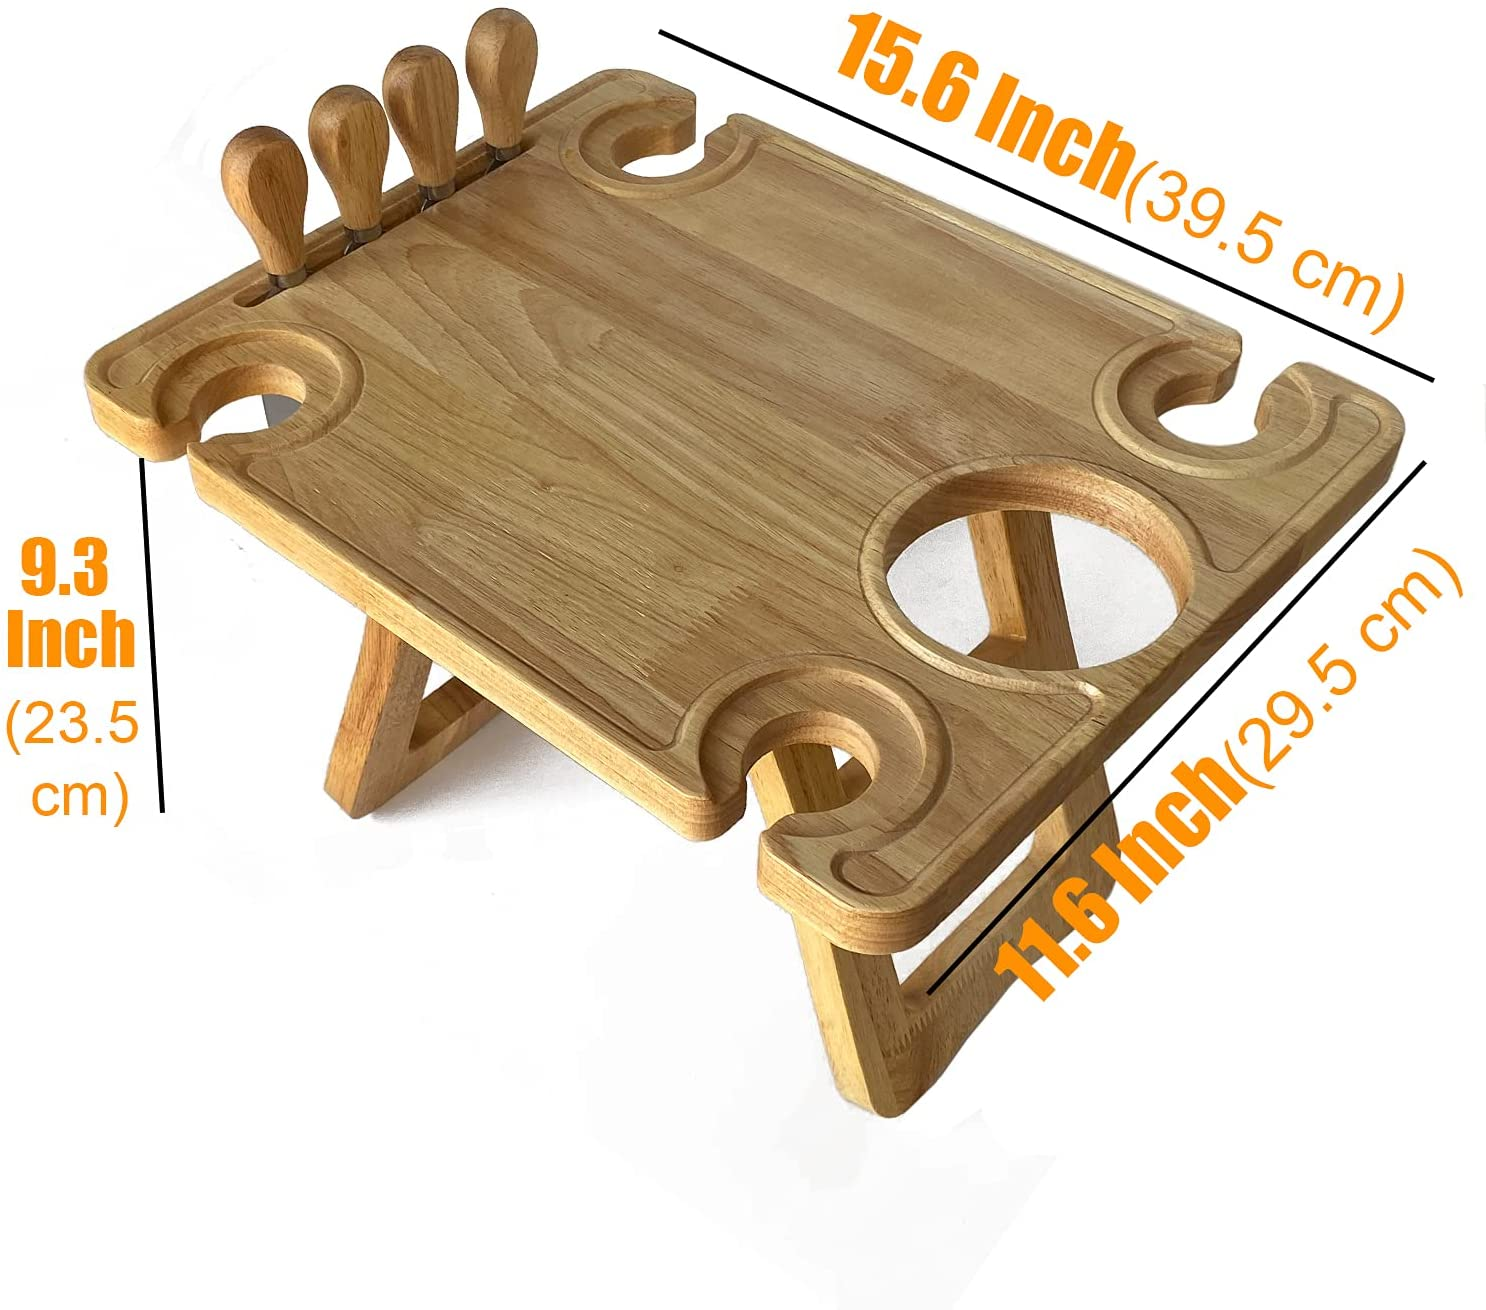 Bamboo Portable Wine Picnic Table Folding Beach Table Snack & Cheese Tray with 4 Wine Glasses Holder Free 4 Pcs